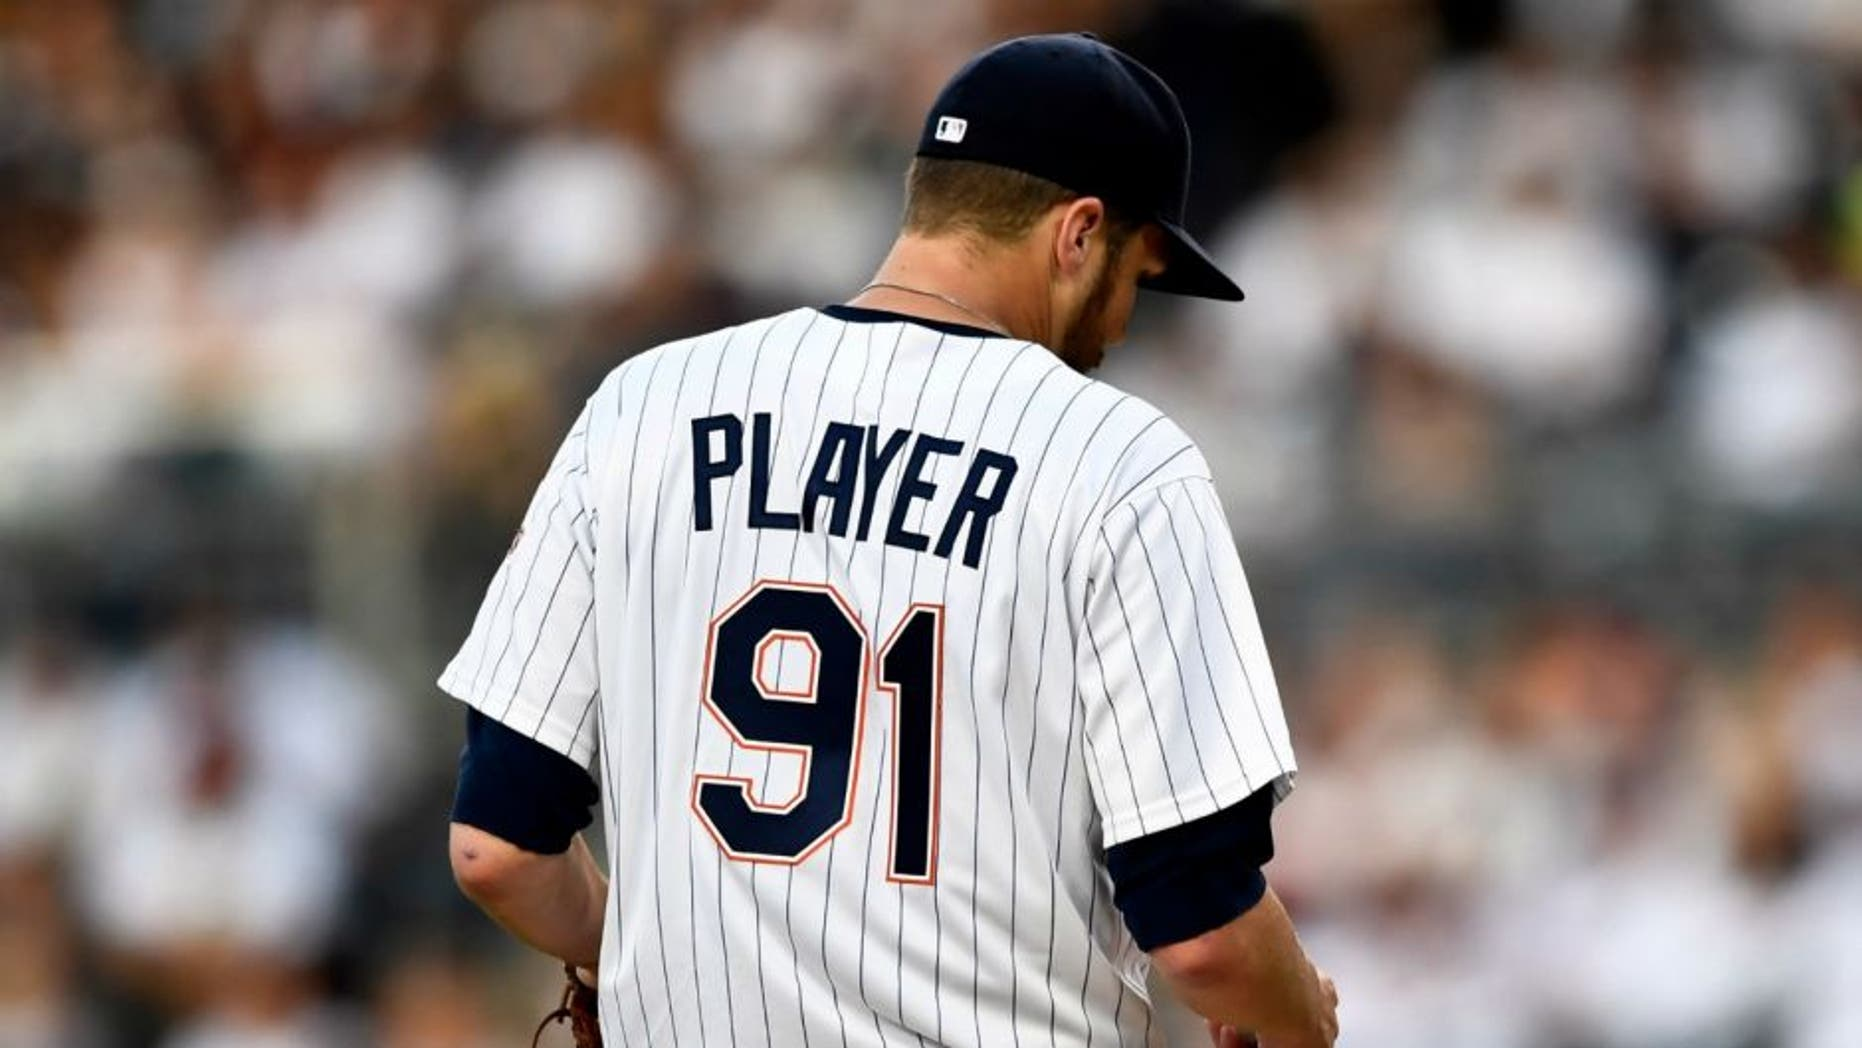 San Diego Padres starting pitcher Paul Clemens stands on the mound during a crucial situation against the Philadelphia Phillies in the fourth inning of a baseball game Saturday, Aug. 6, 2016, in San Diego. Clemens was told to change his jersey by umpire Mike Everett when pine tar was found on the jersey. (AP Photo/San Diego Padres)